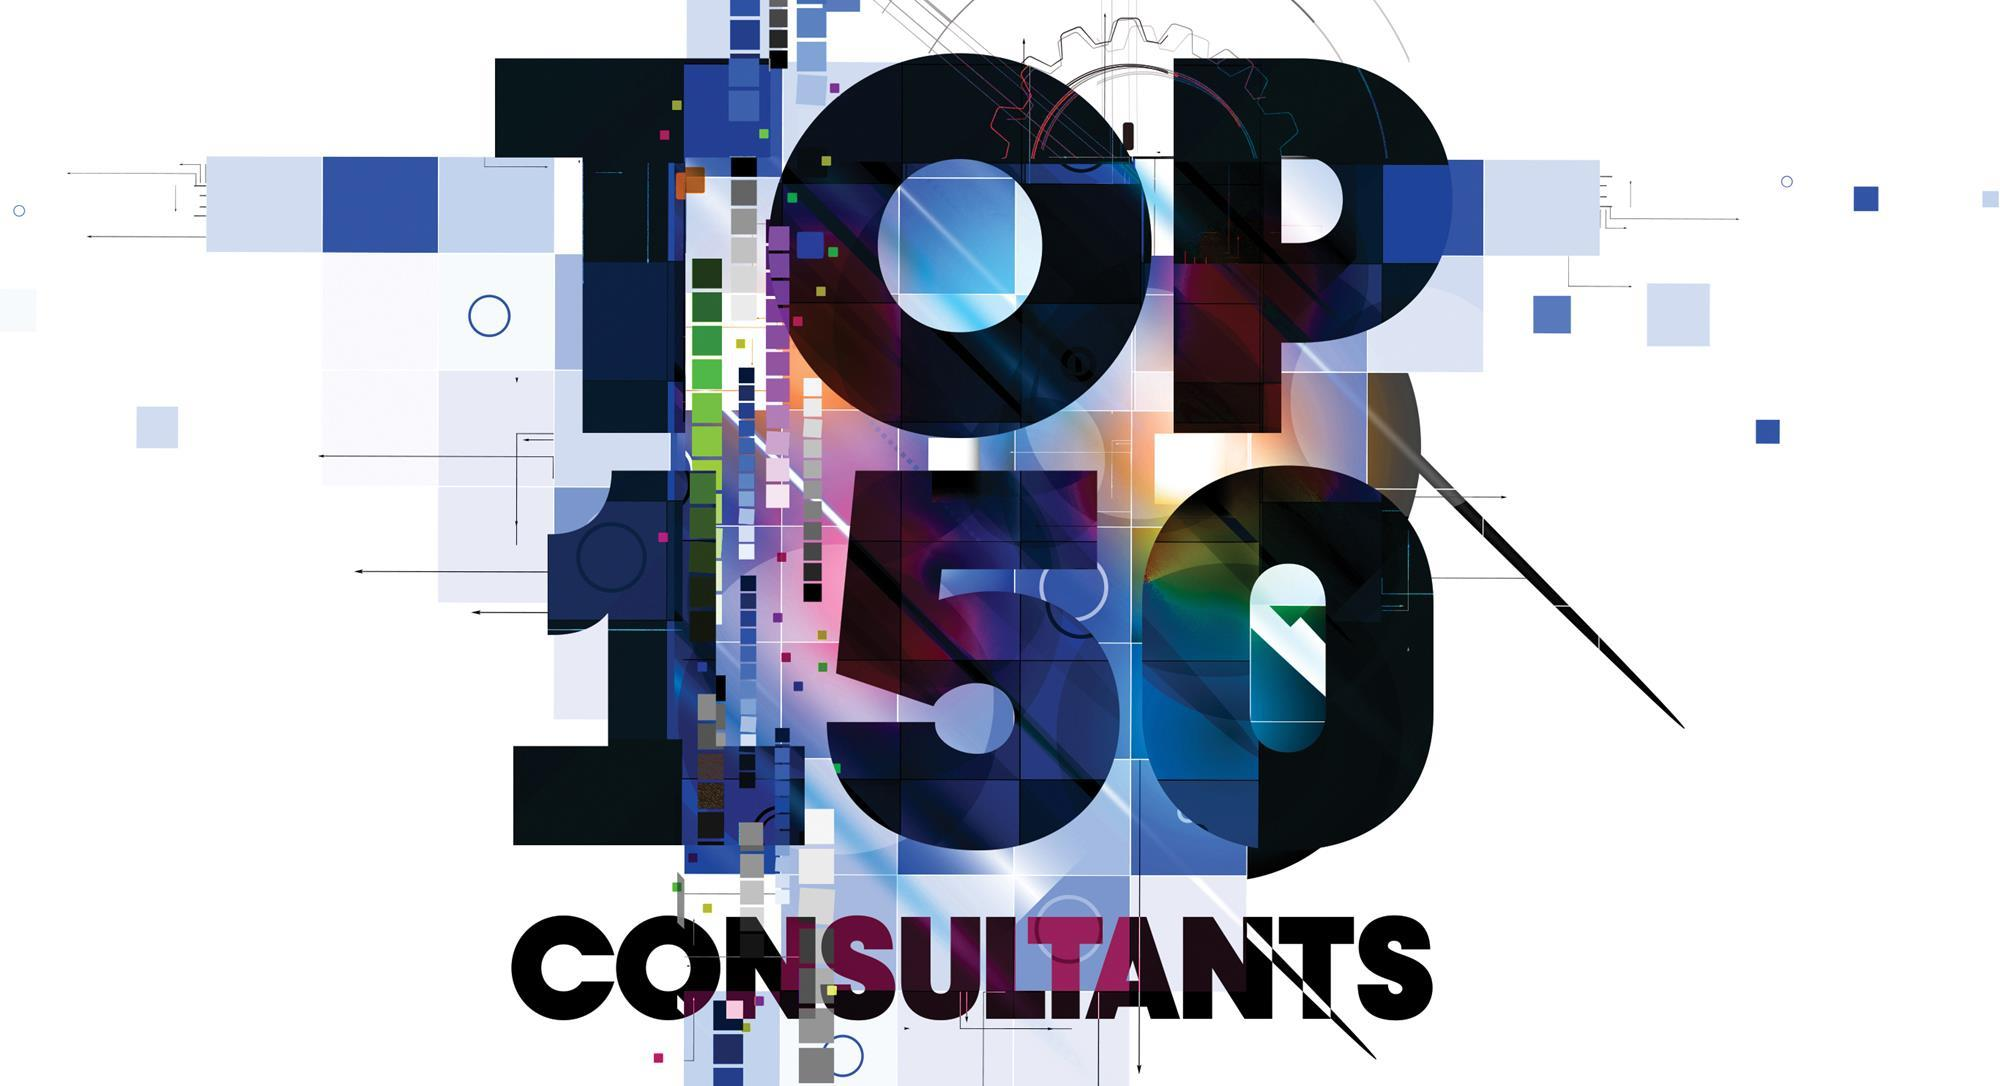 Top 150 Consultants 2018 - league table | Features | Building